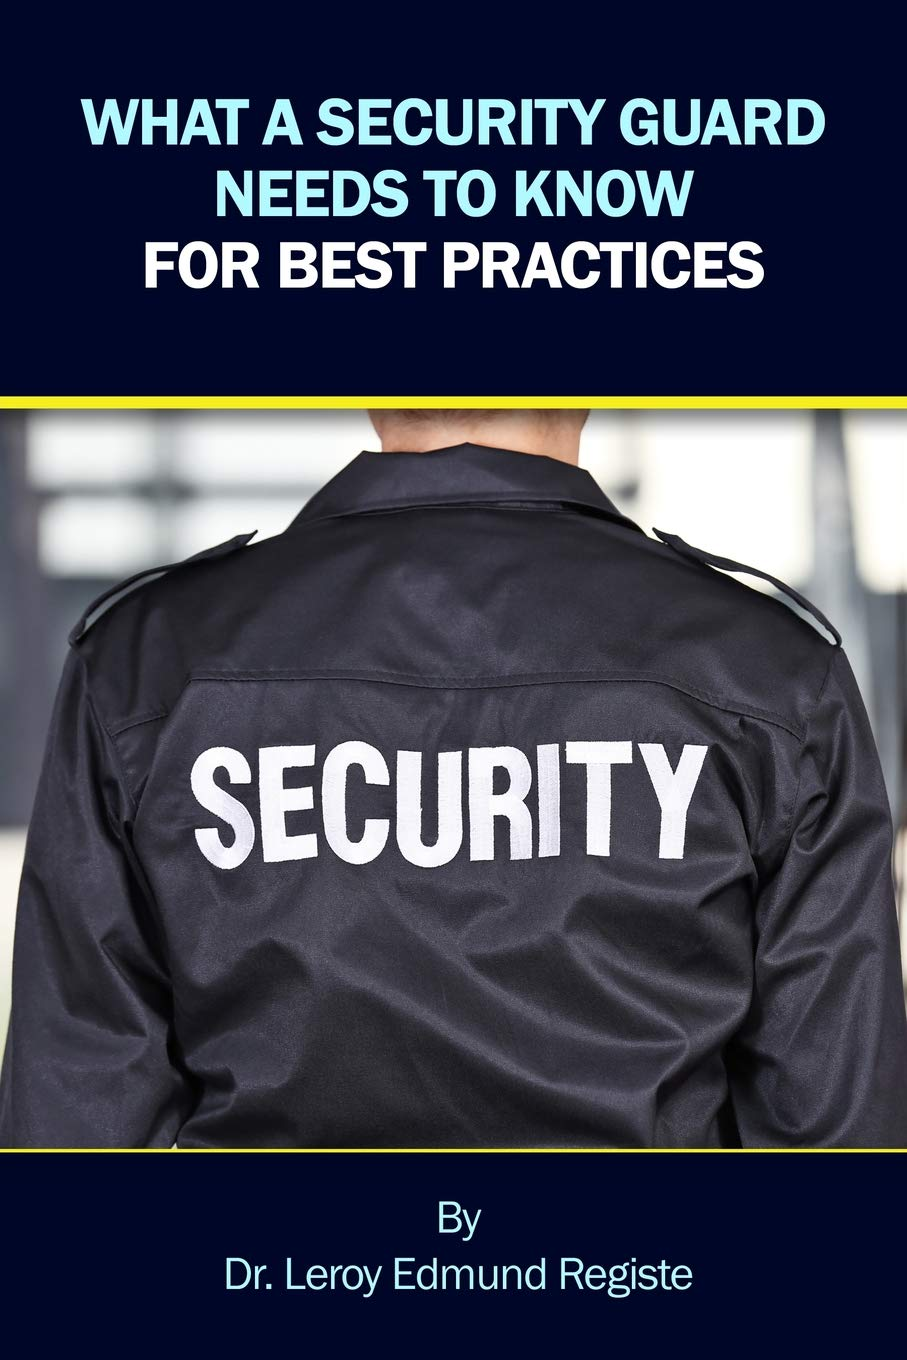 What a Security Guard Needs to Know for Best Practices: Leroy Edmund